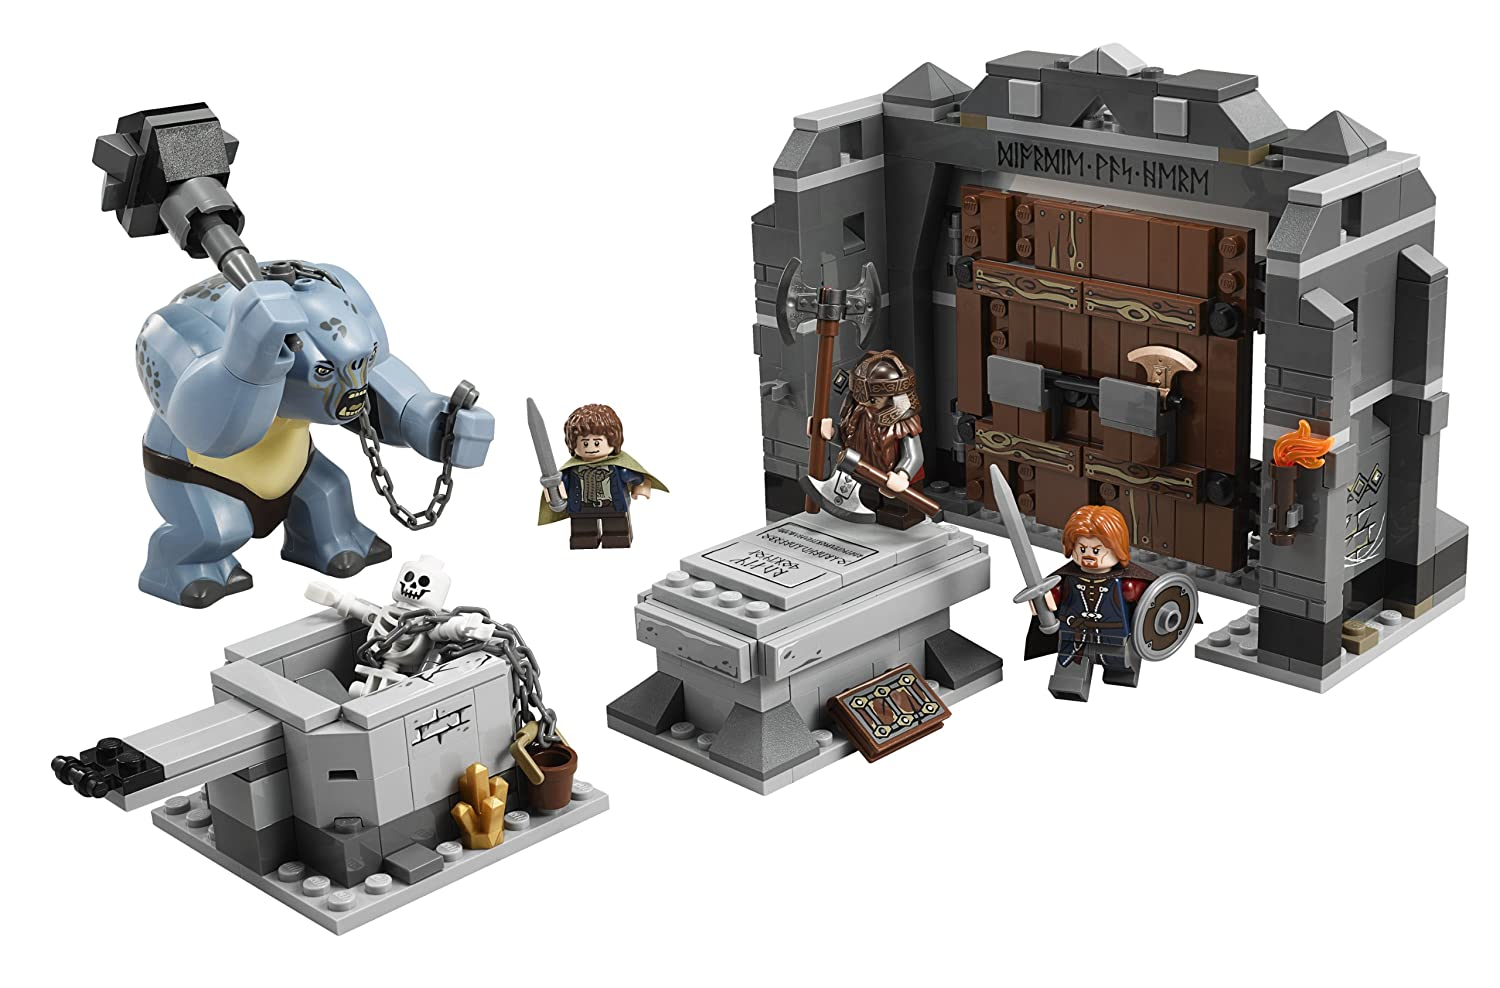 LEGO Lord of the Rings 4659477 9473 LEGO The Lord of the Rings Hobbit The Mines of Moria